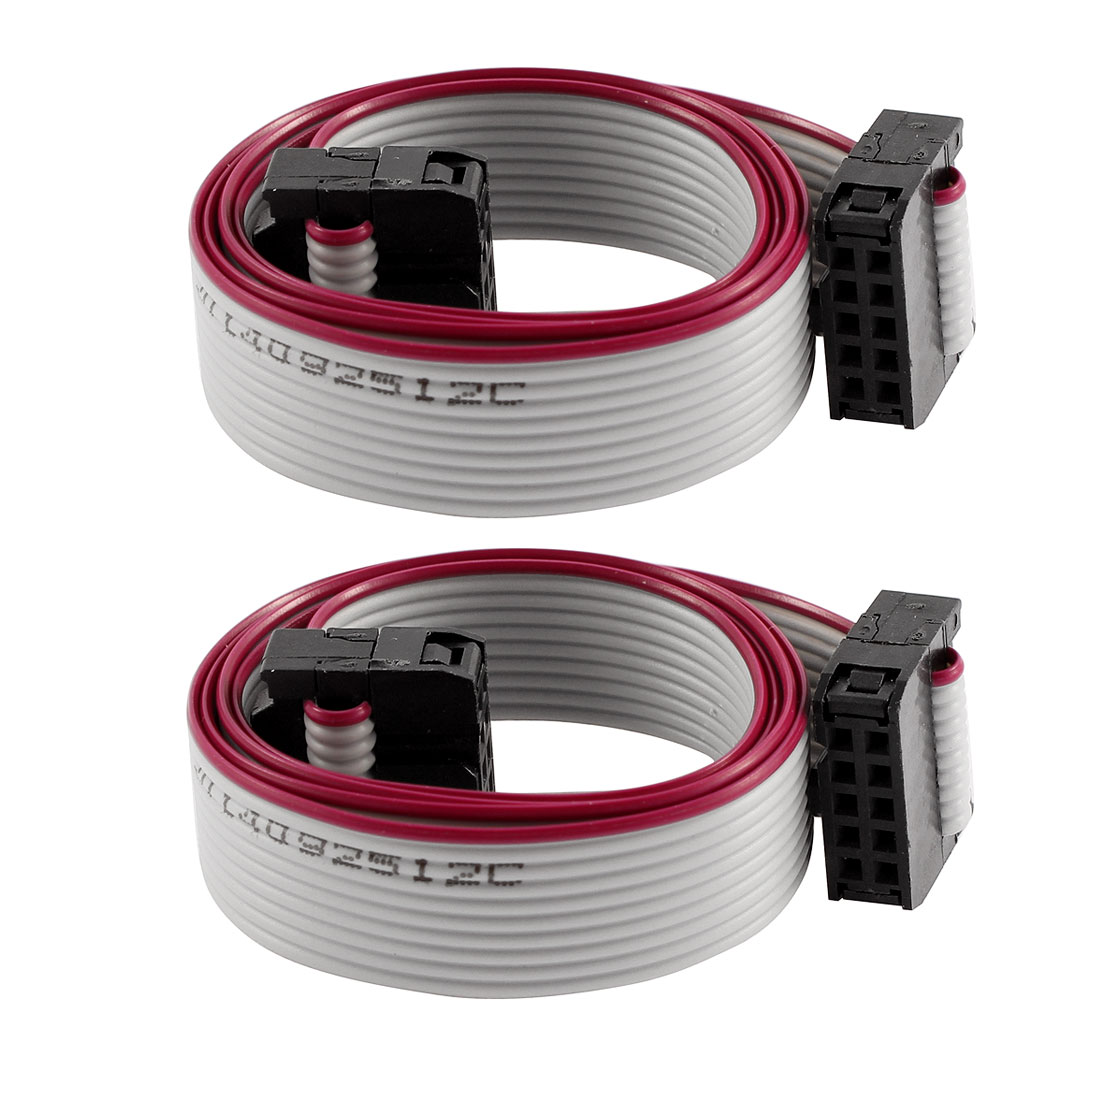 2 Pcs FC10P IDC 10-Pin F/F Hard Drive Data Extension Wire Flat Ribbon Cable Connector 50cm Long for Motherboard